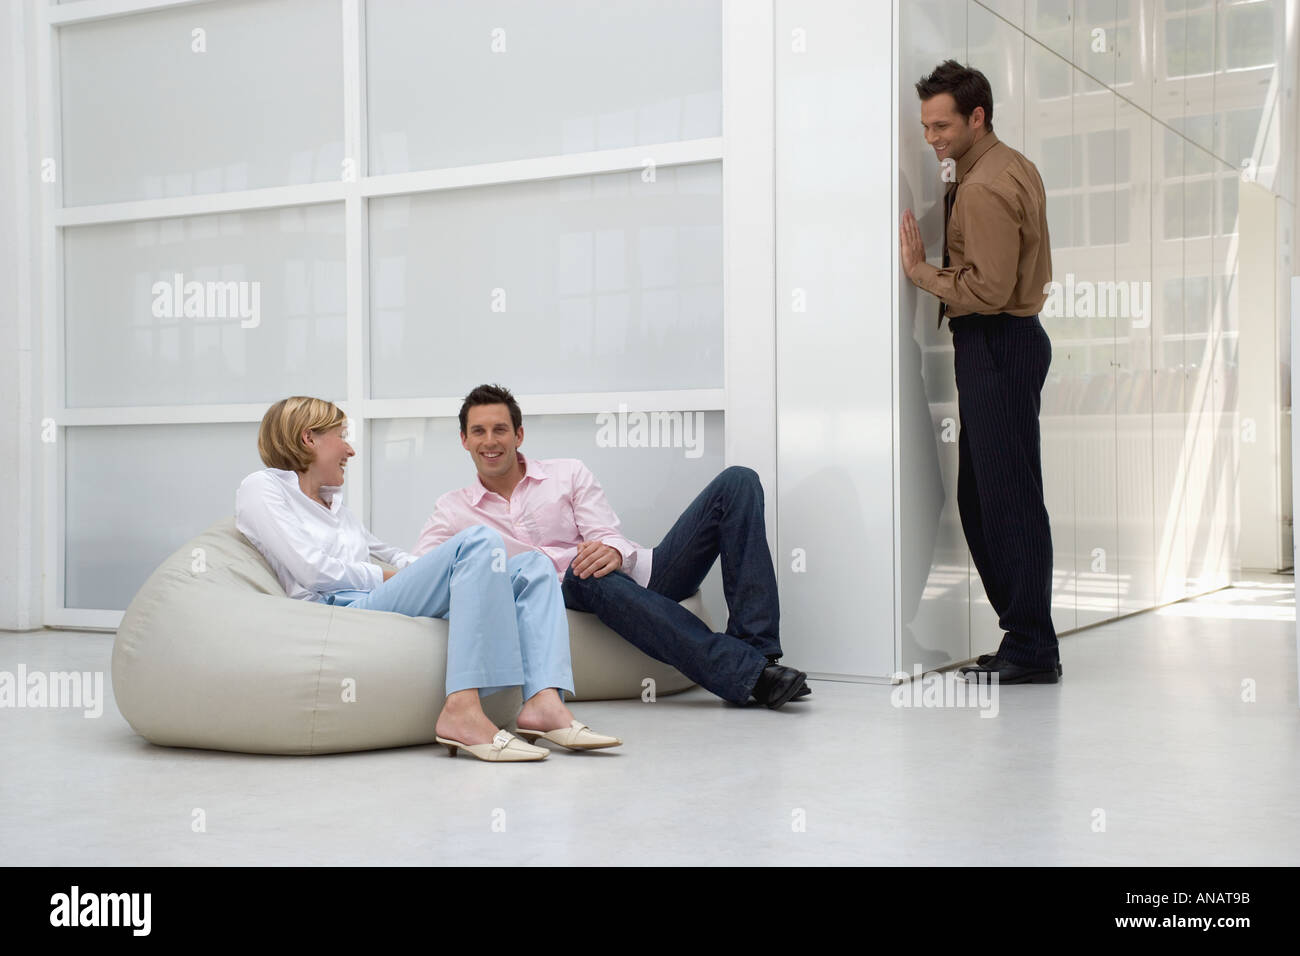 man hiding from two business colleagues in office building - Stock Image